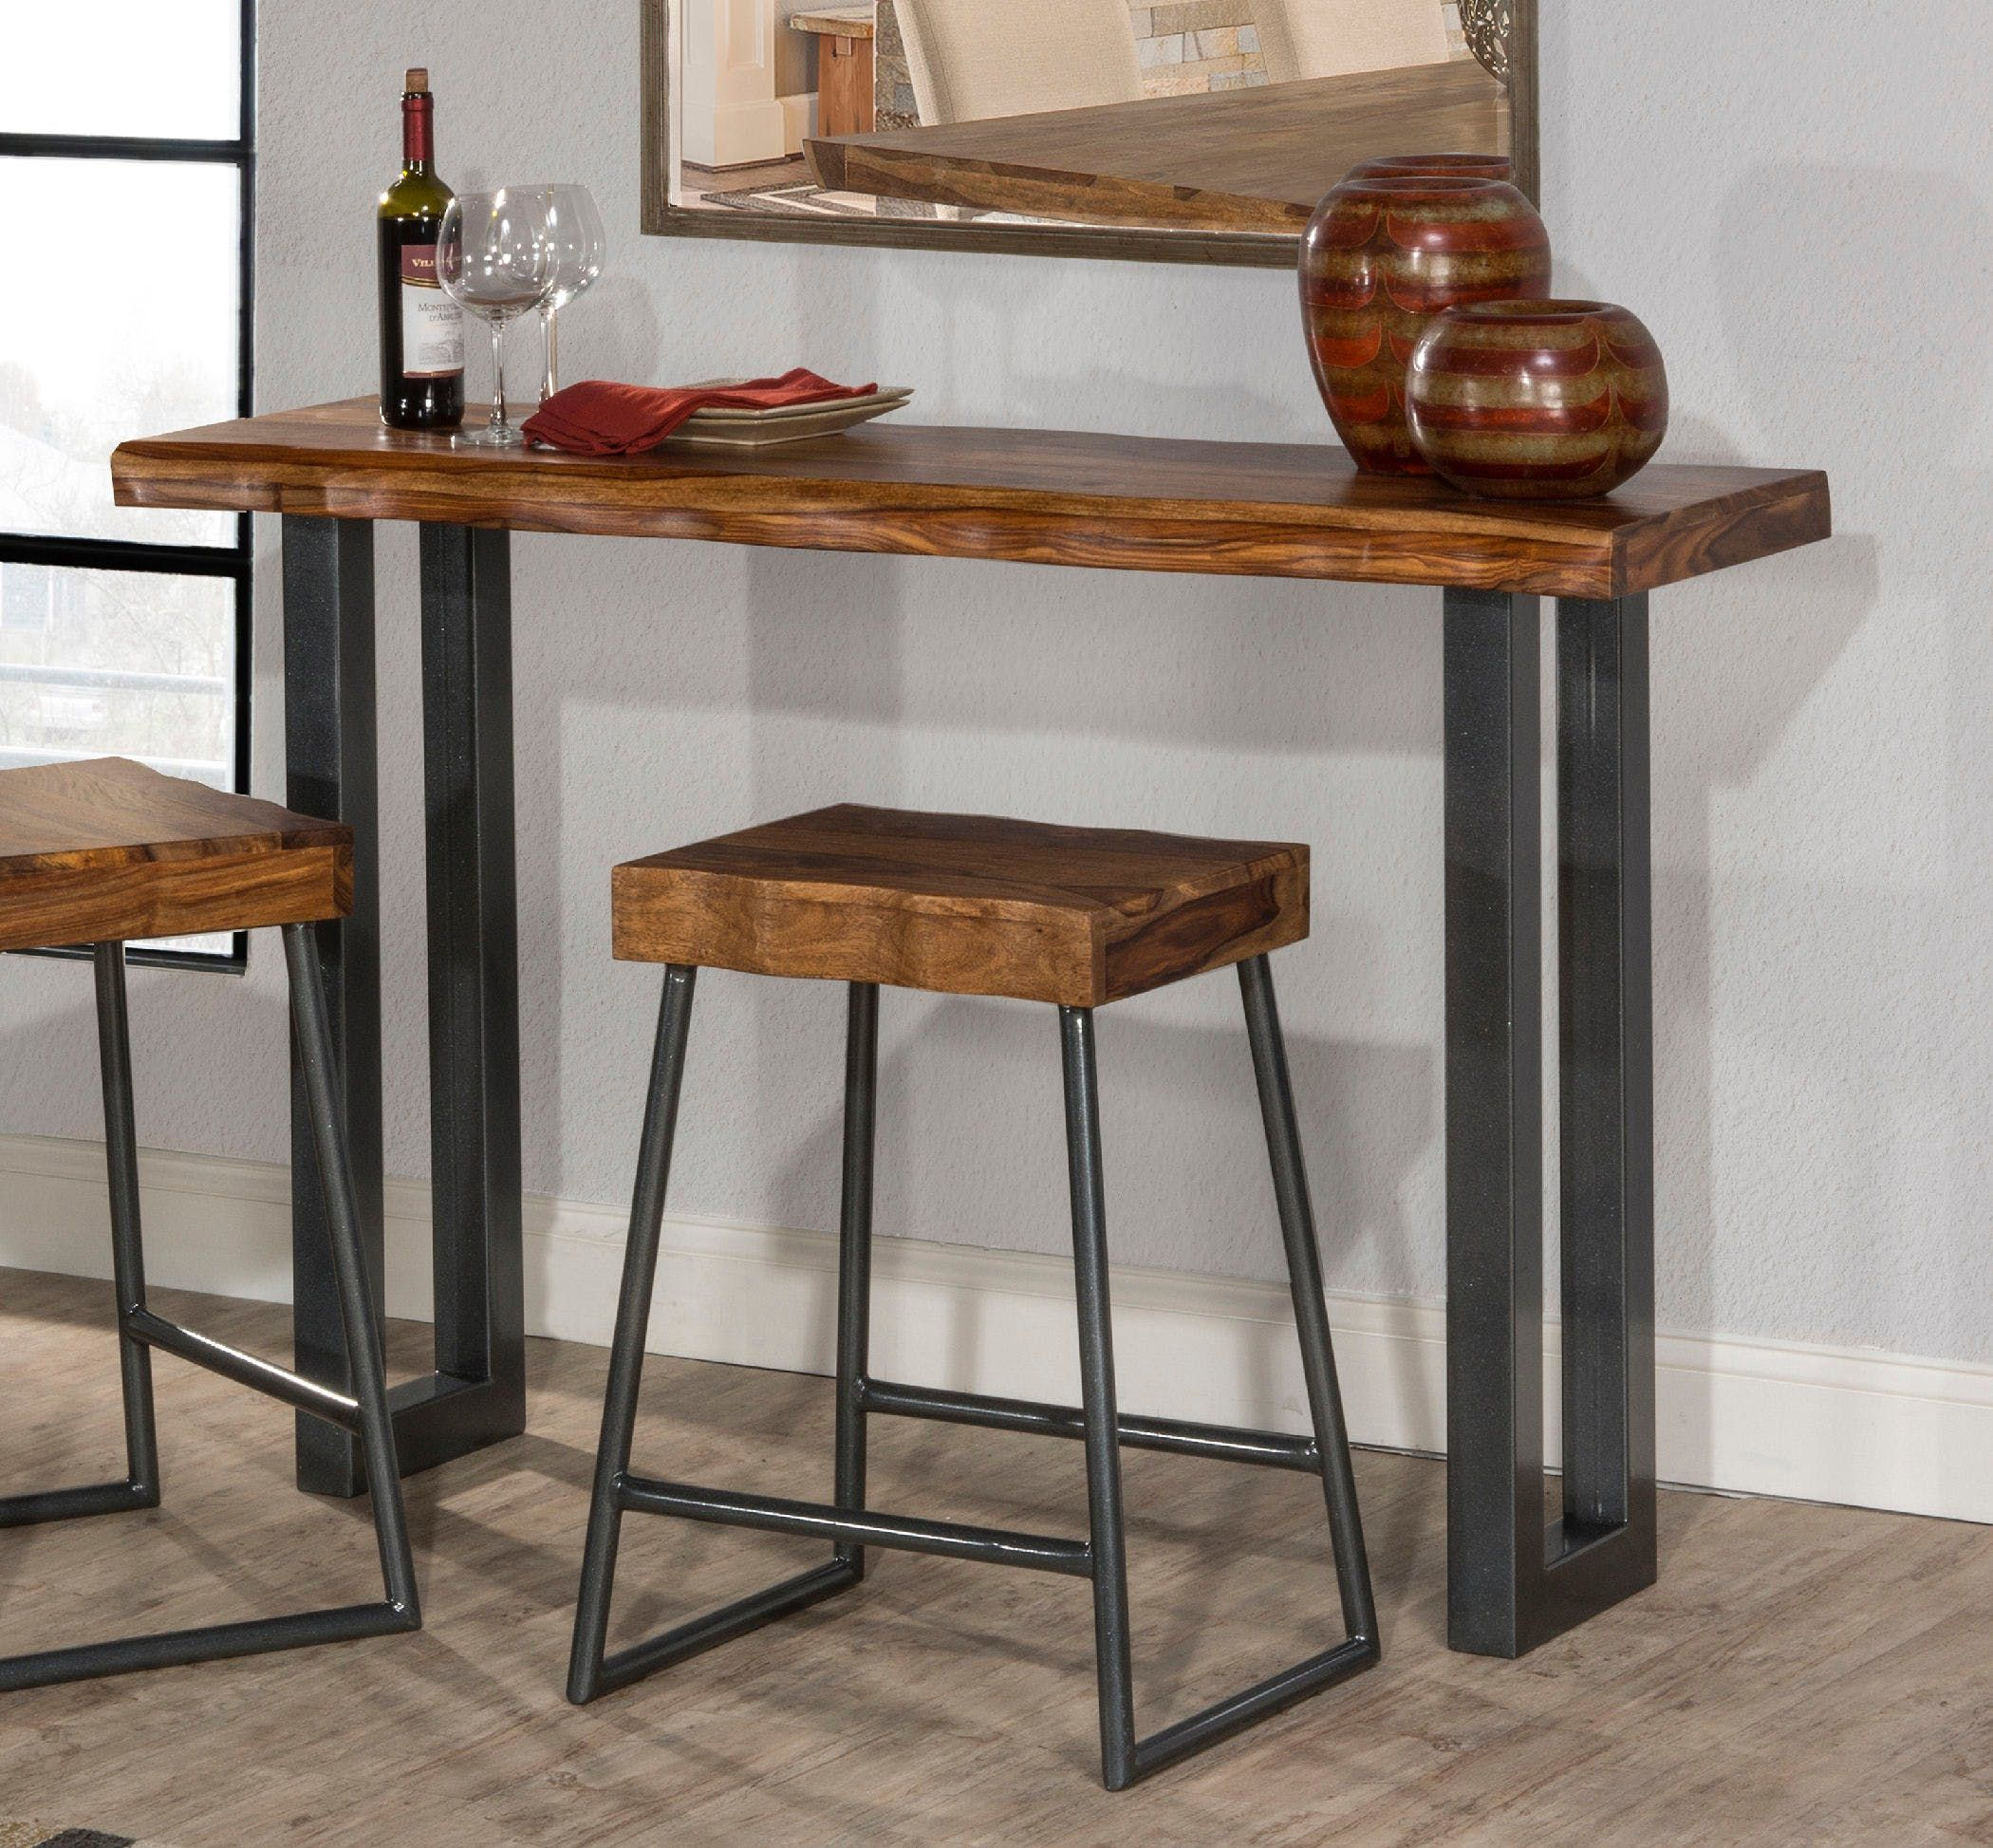 Ideal For Small Spaces Is The Emerson Sofa Table With Non Swivel Stools Gray Metallic U Shaped Legs Bring Out Th Wood Sofa Table Sofa Table Table Behind Couch